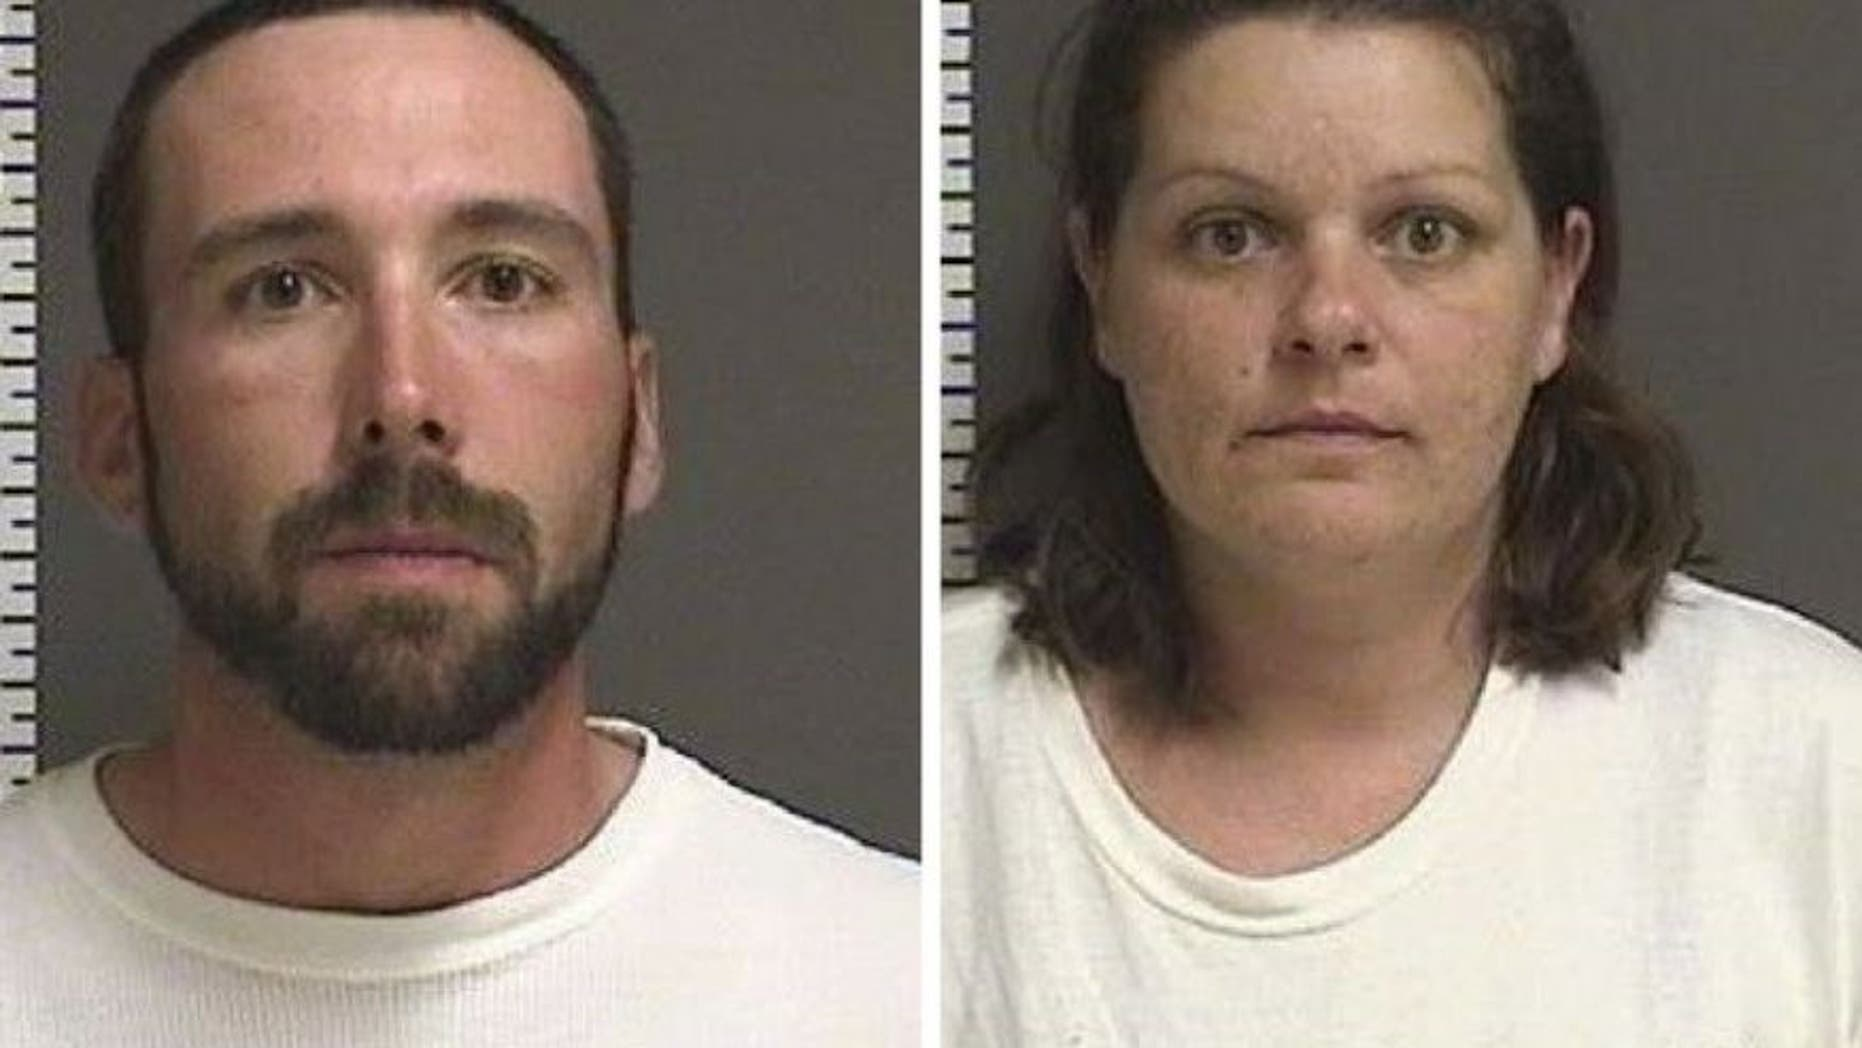 William Henry Hoehn, 32, and Brooke Lynn Crews, 38, were arrested last Thursday in Savanna Greywind's disappearance. (Fargo Police)